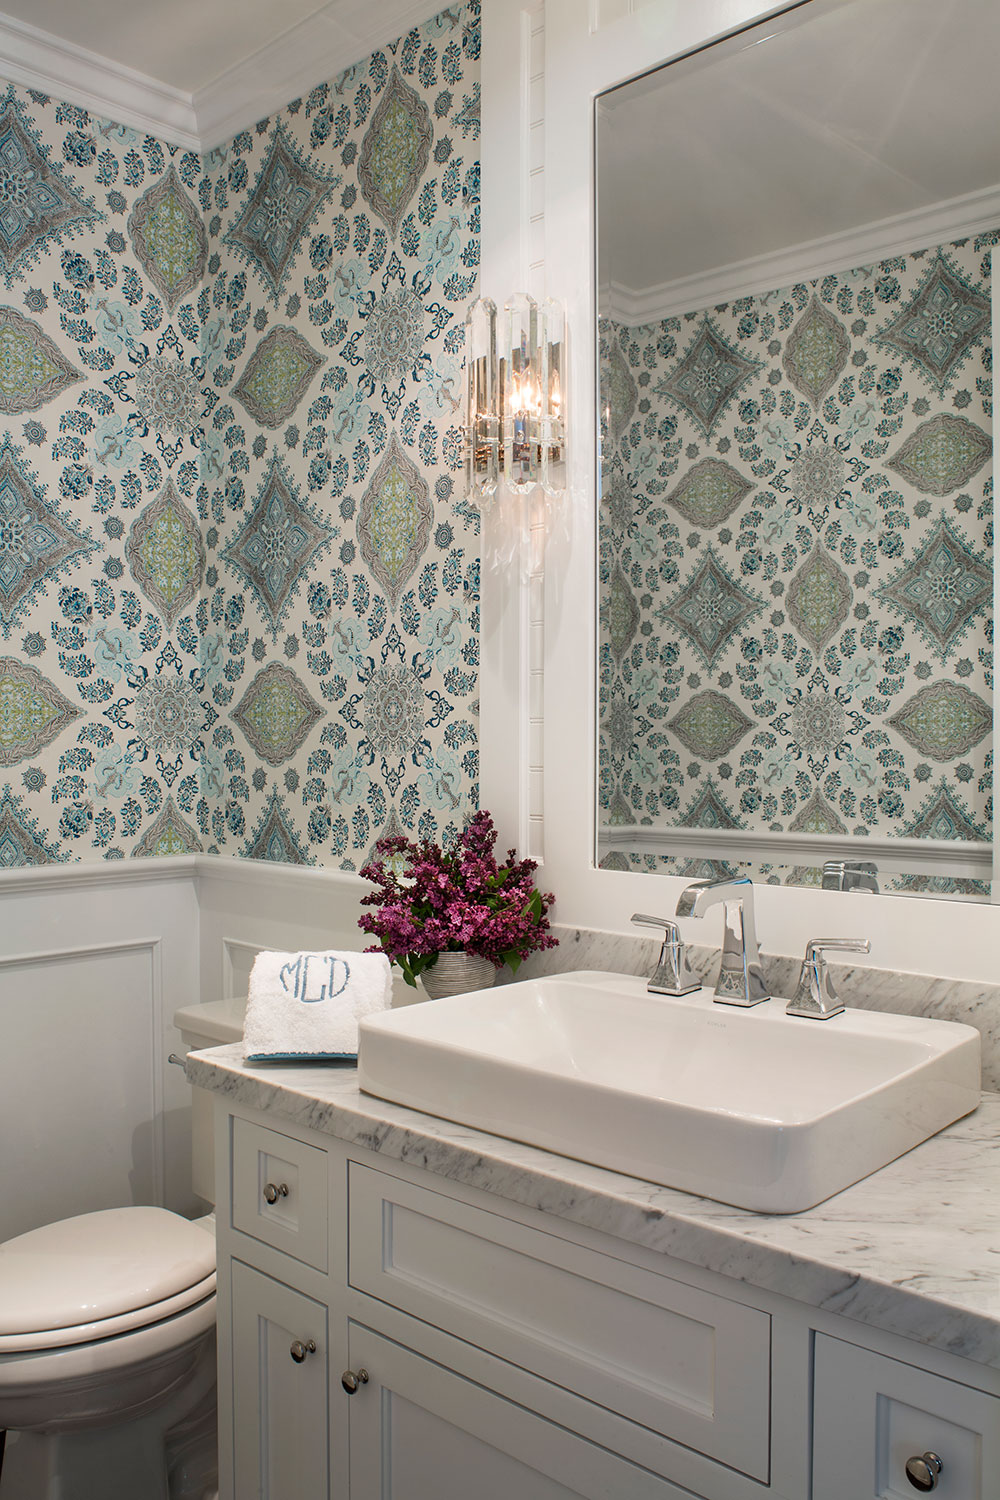 10 decorating trends to watch out for in 2018 real simple for Wallpaper trends for bathrooms